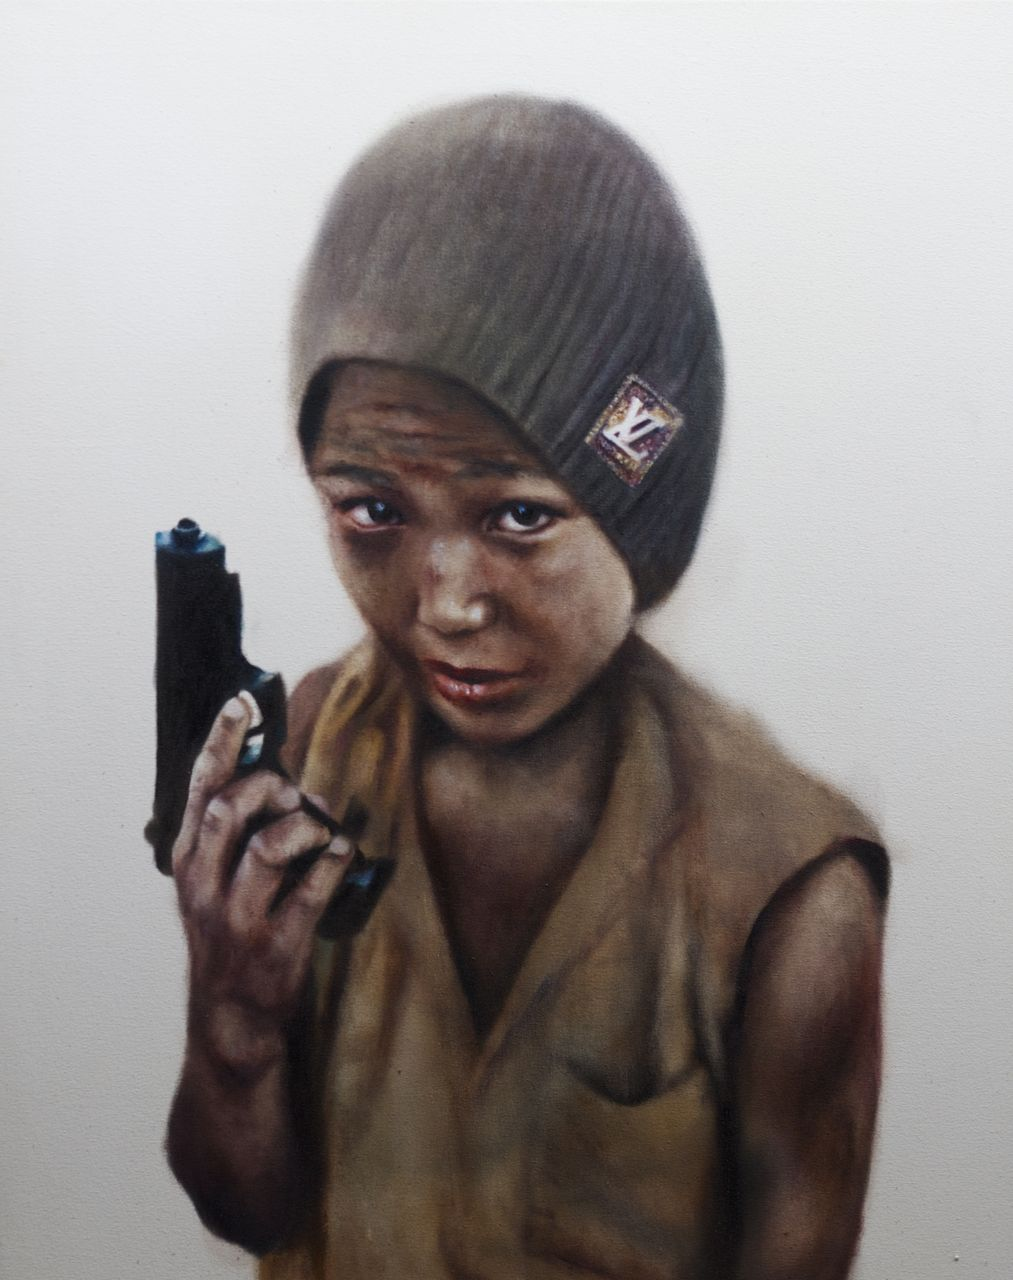 Soldier Giclée Print - from $144.00